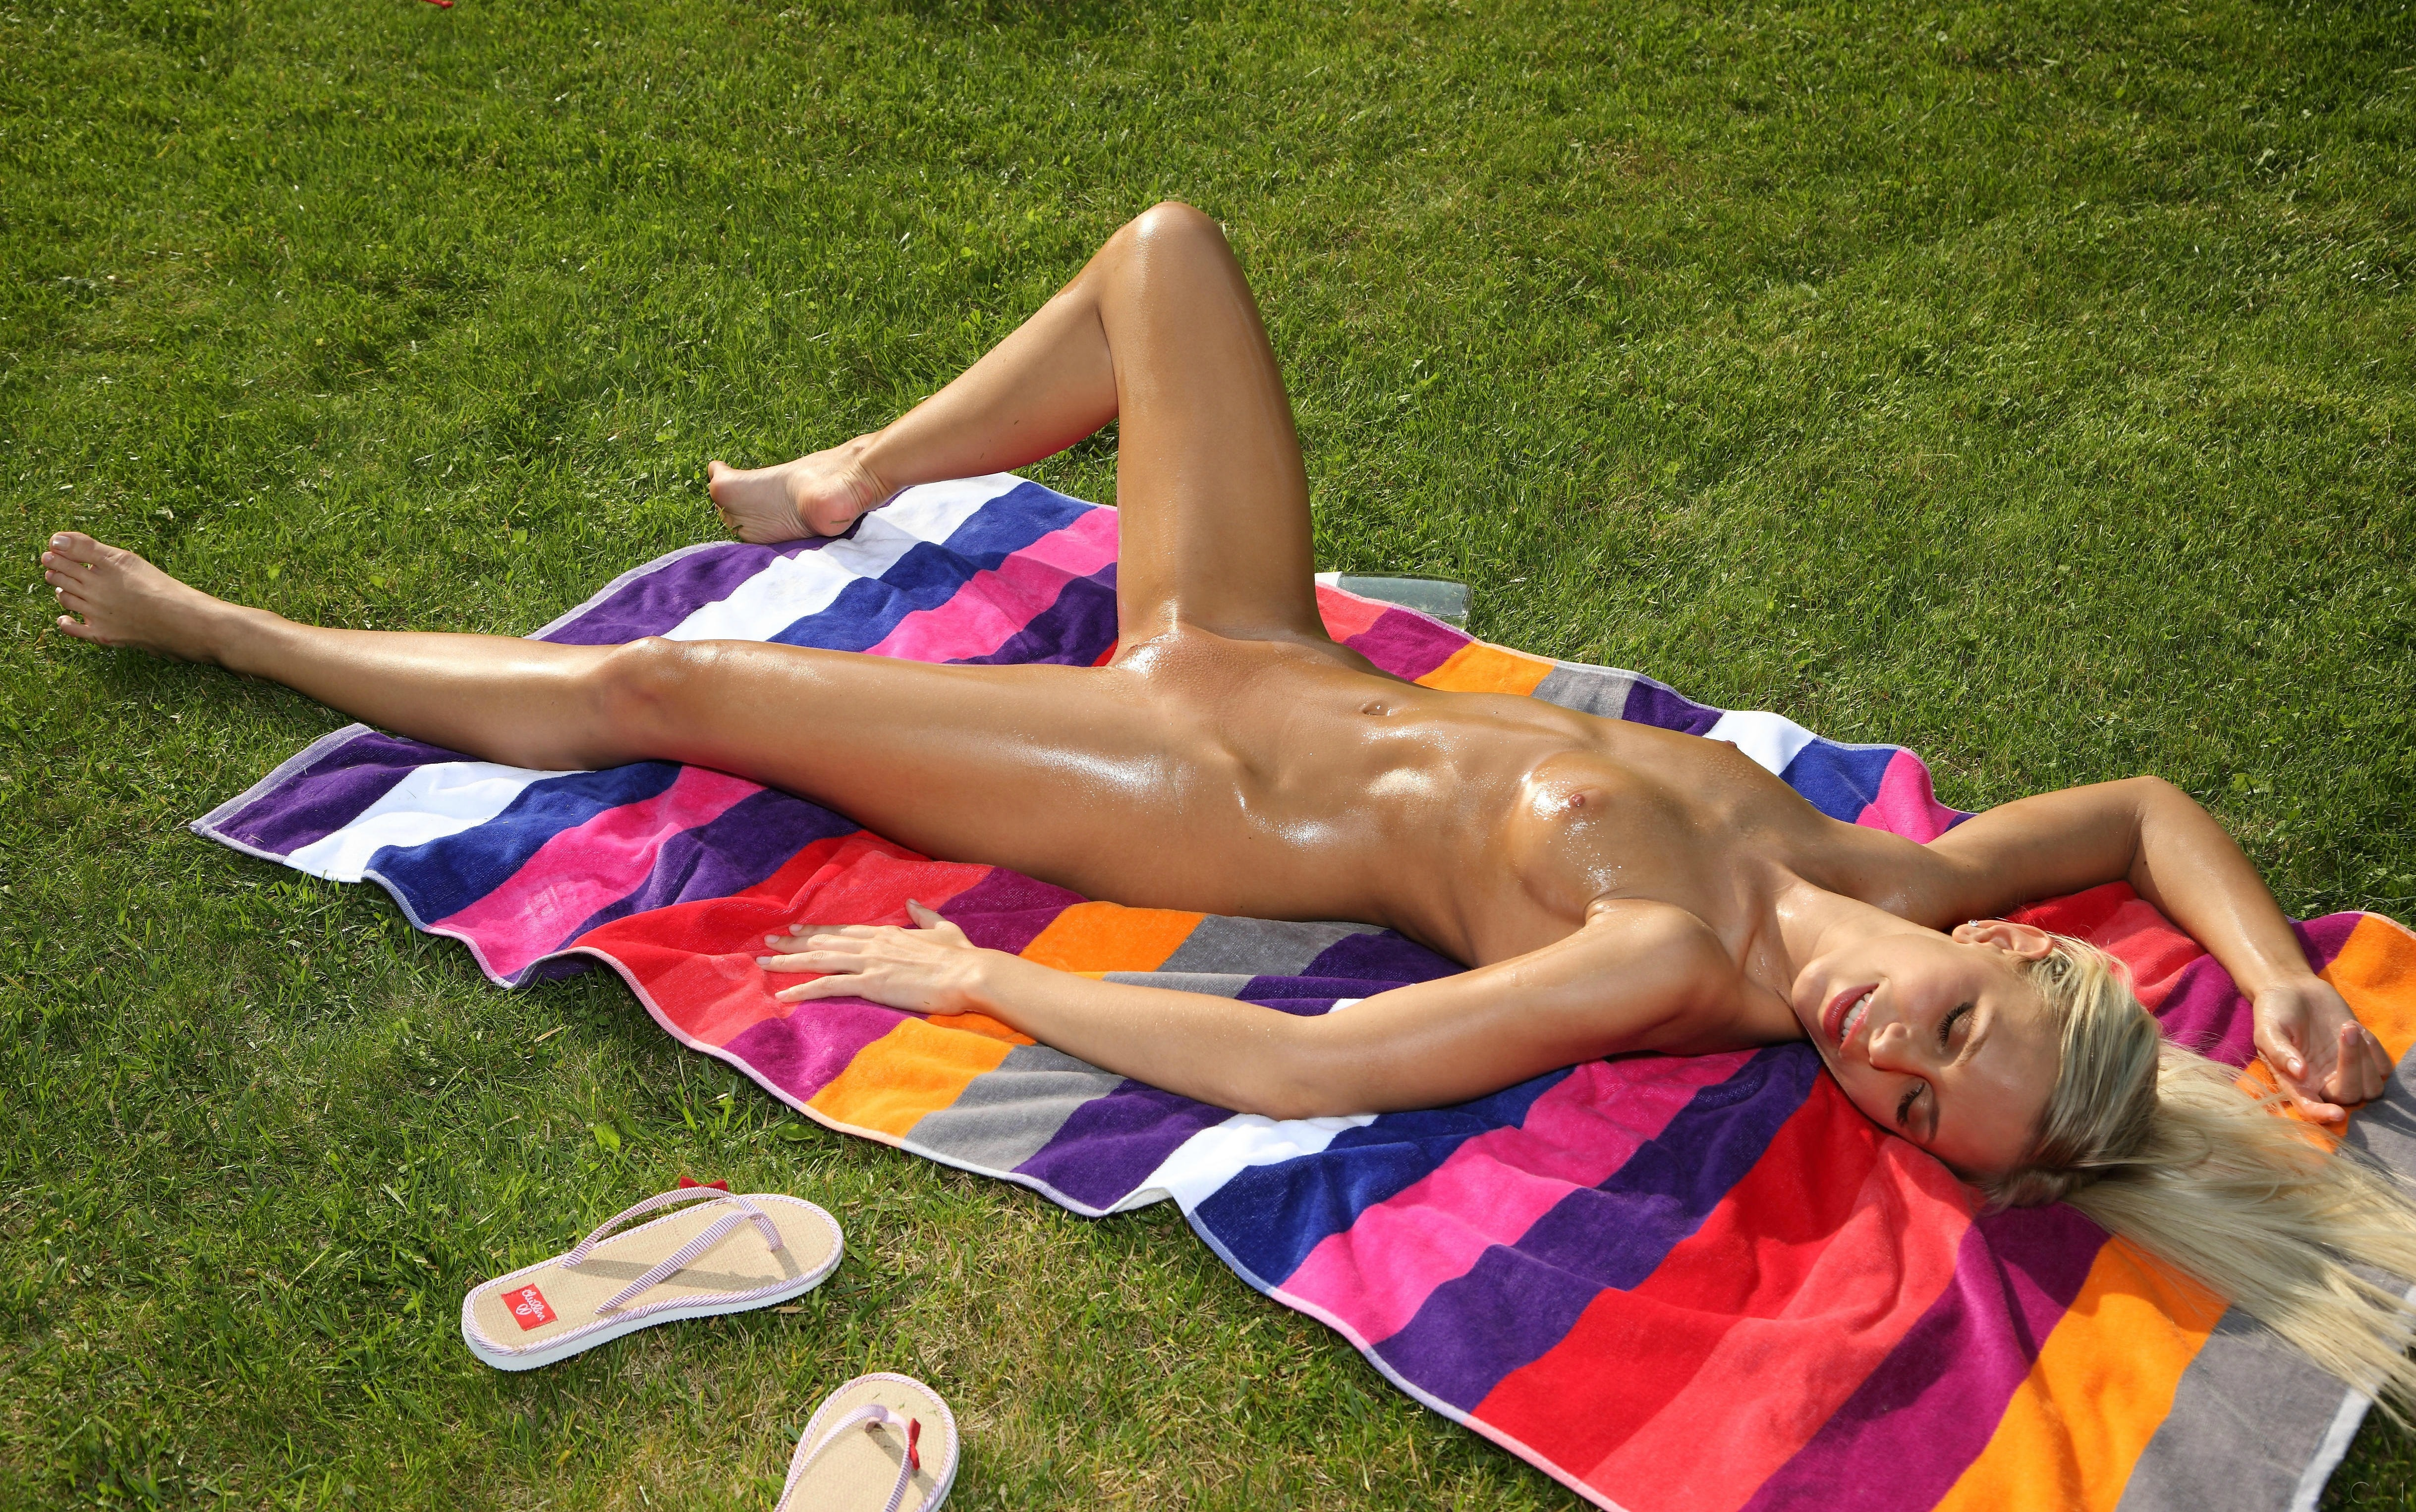 oily babes on towels